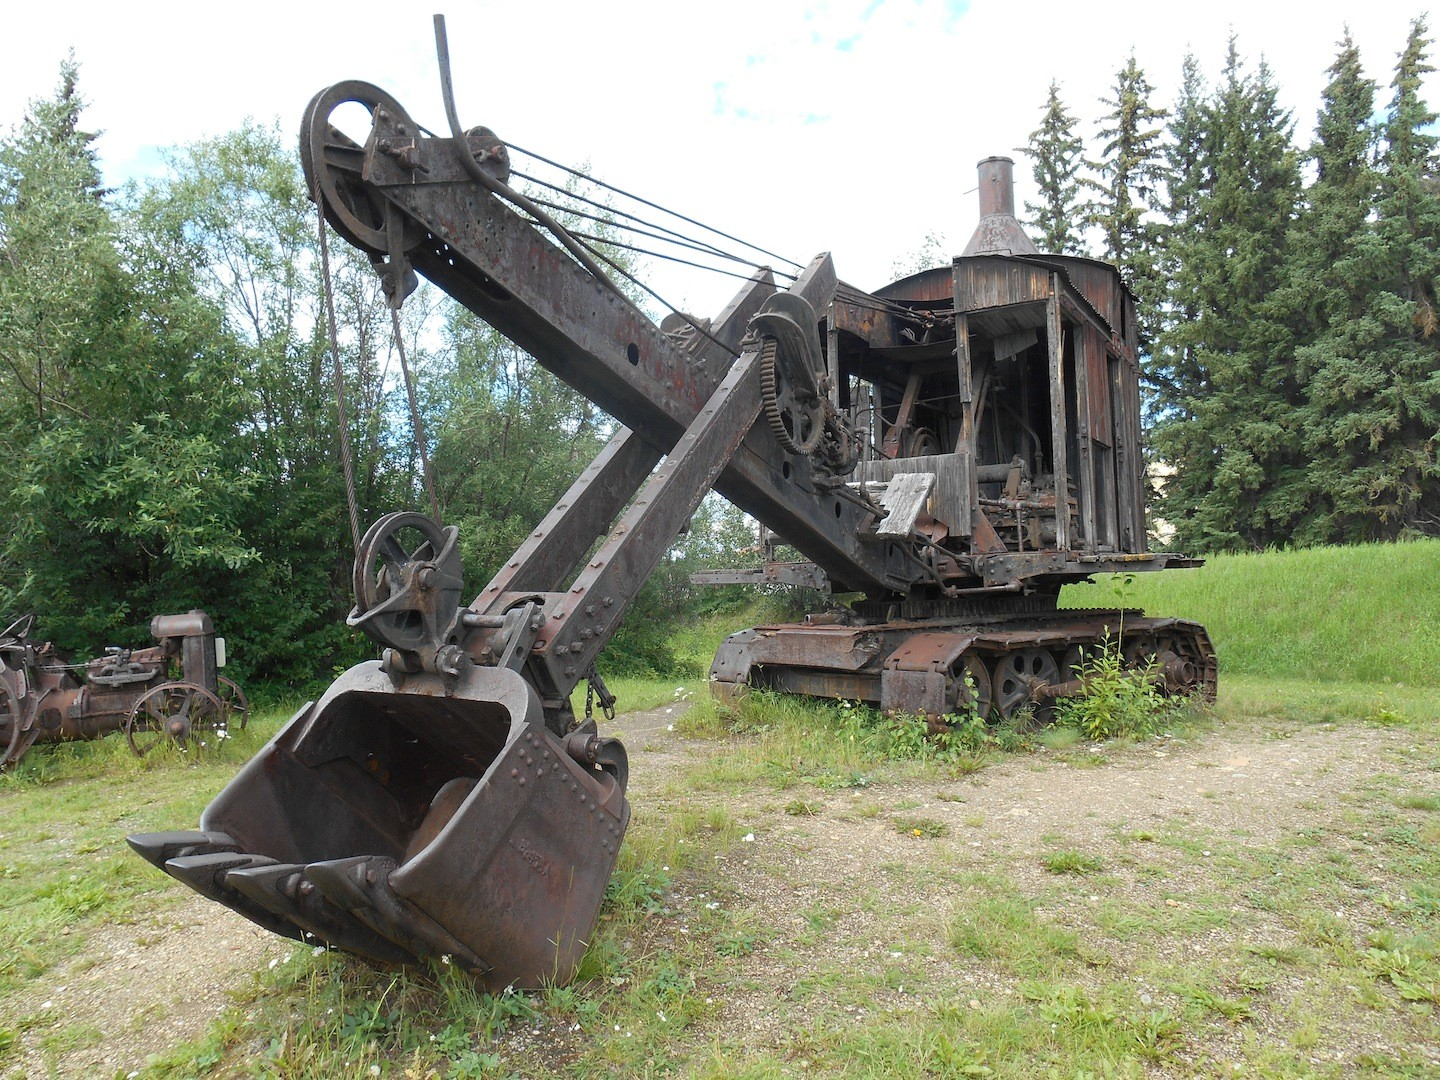 Steam shovels, like this Bucyrus shovel that first dug part of the Panama Canal were used to free gravel for dredging operations.